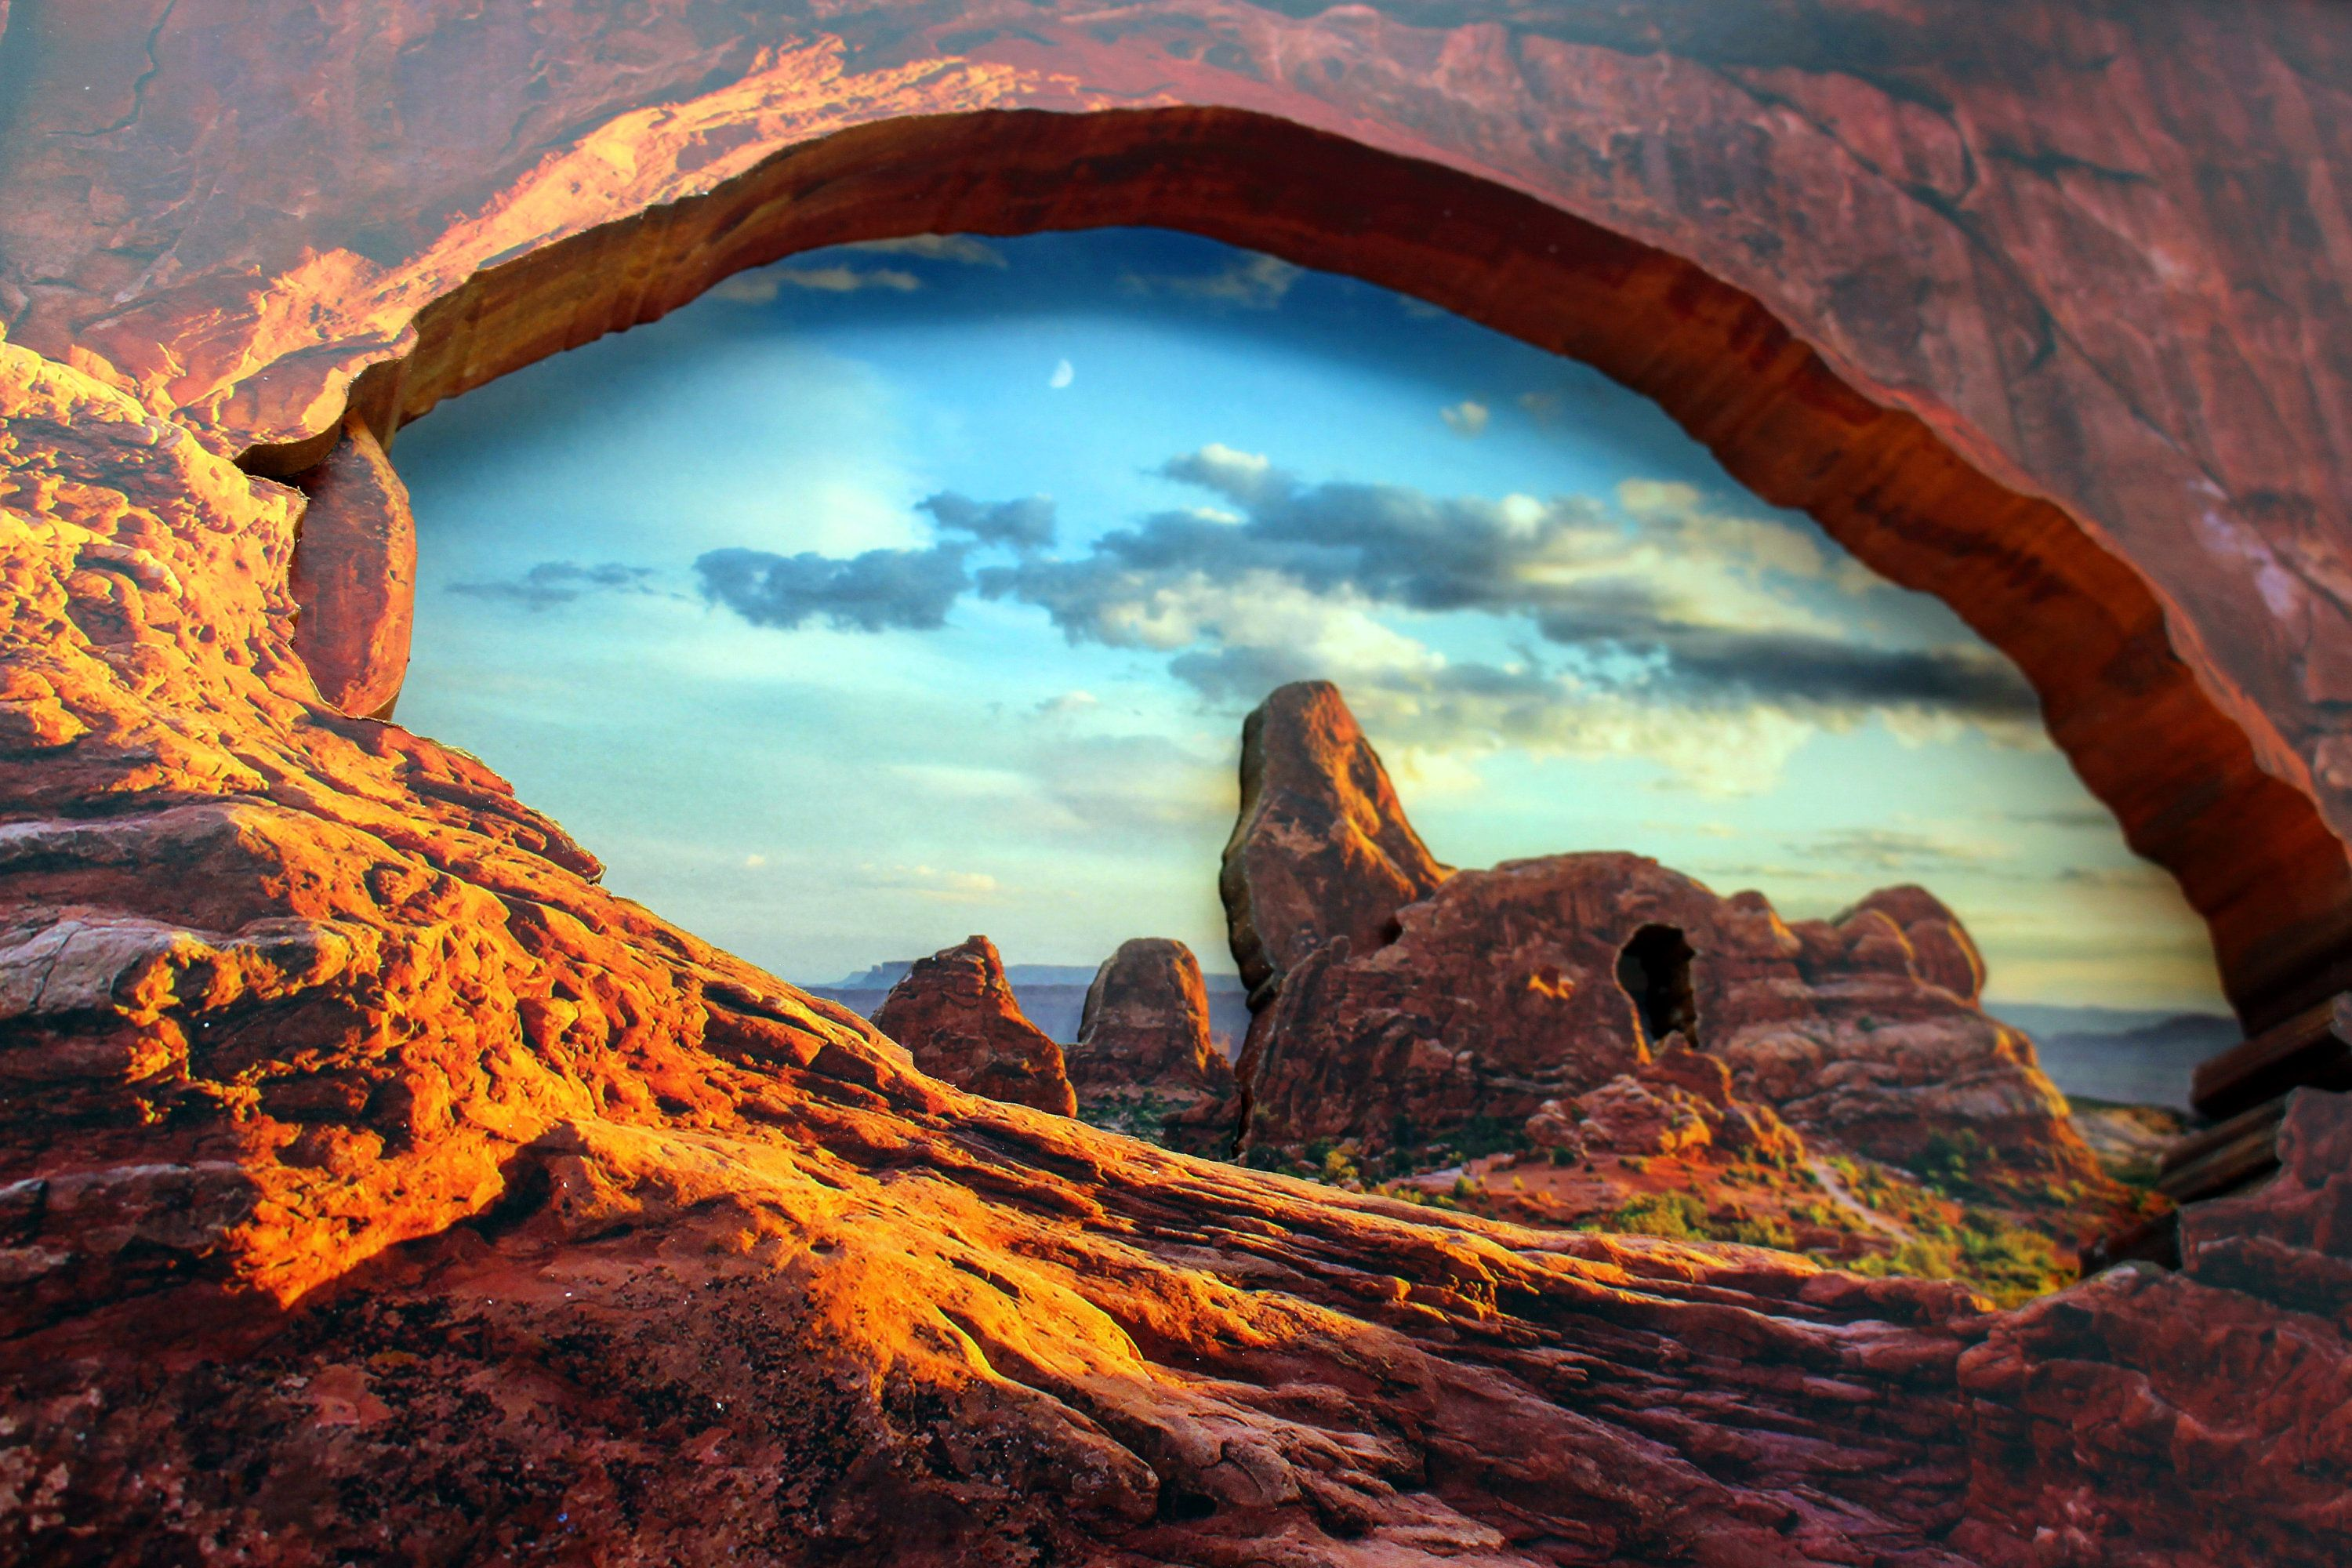 Turret Arch Utah Arches National Park Beehive State Park 3d Etsy Utah Arches Arches National Park National Parks